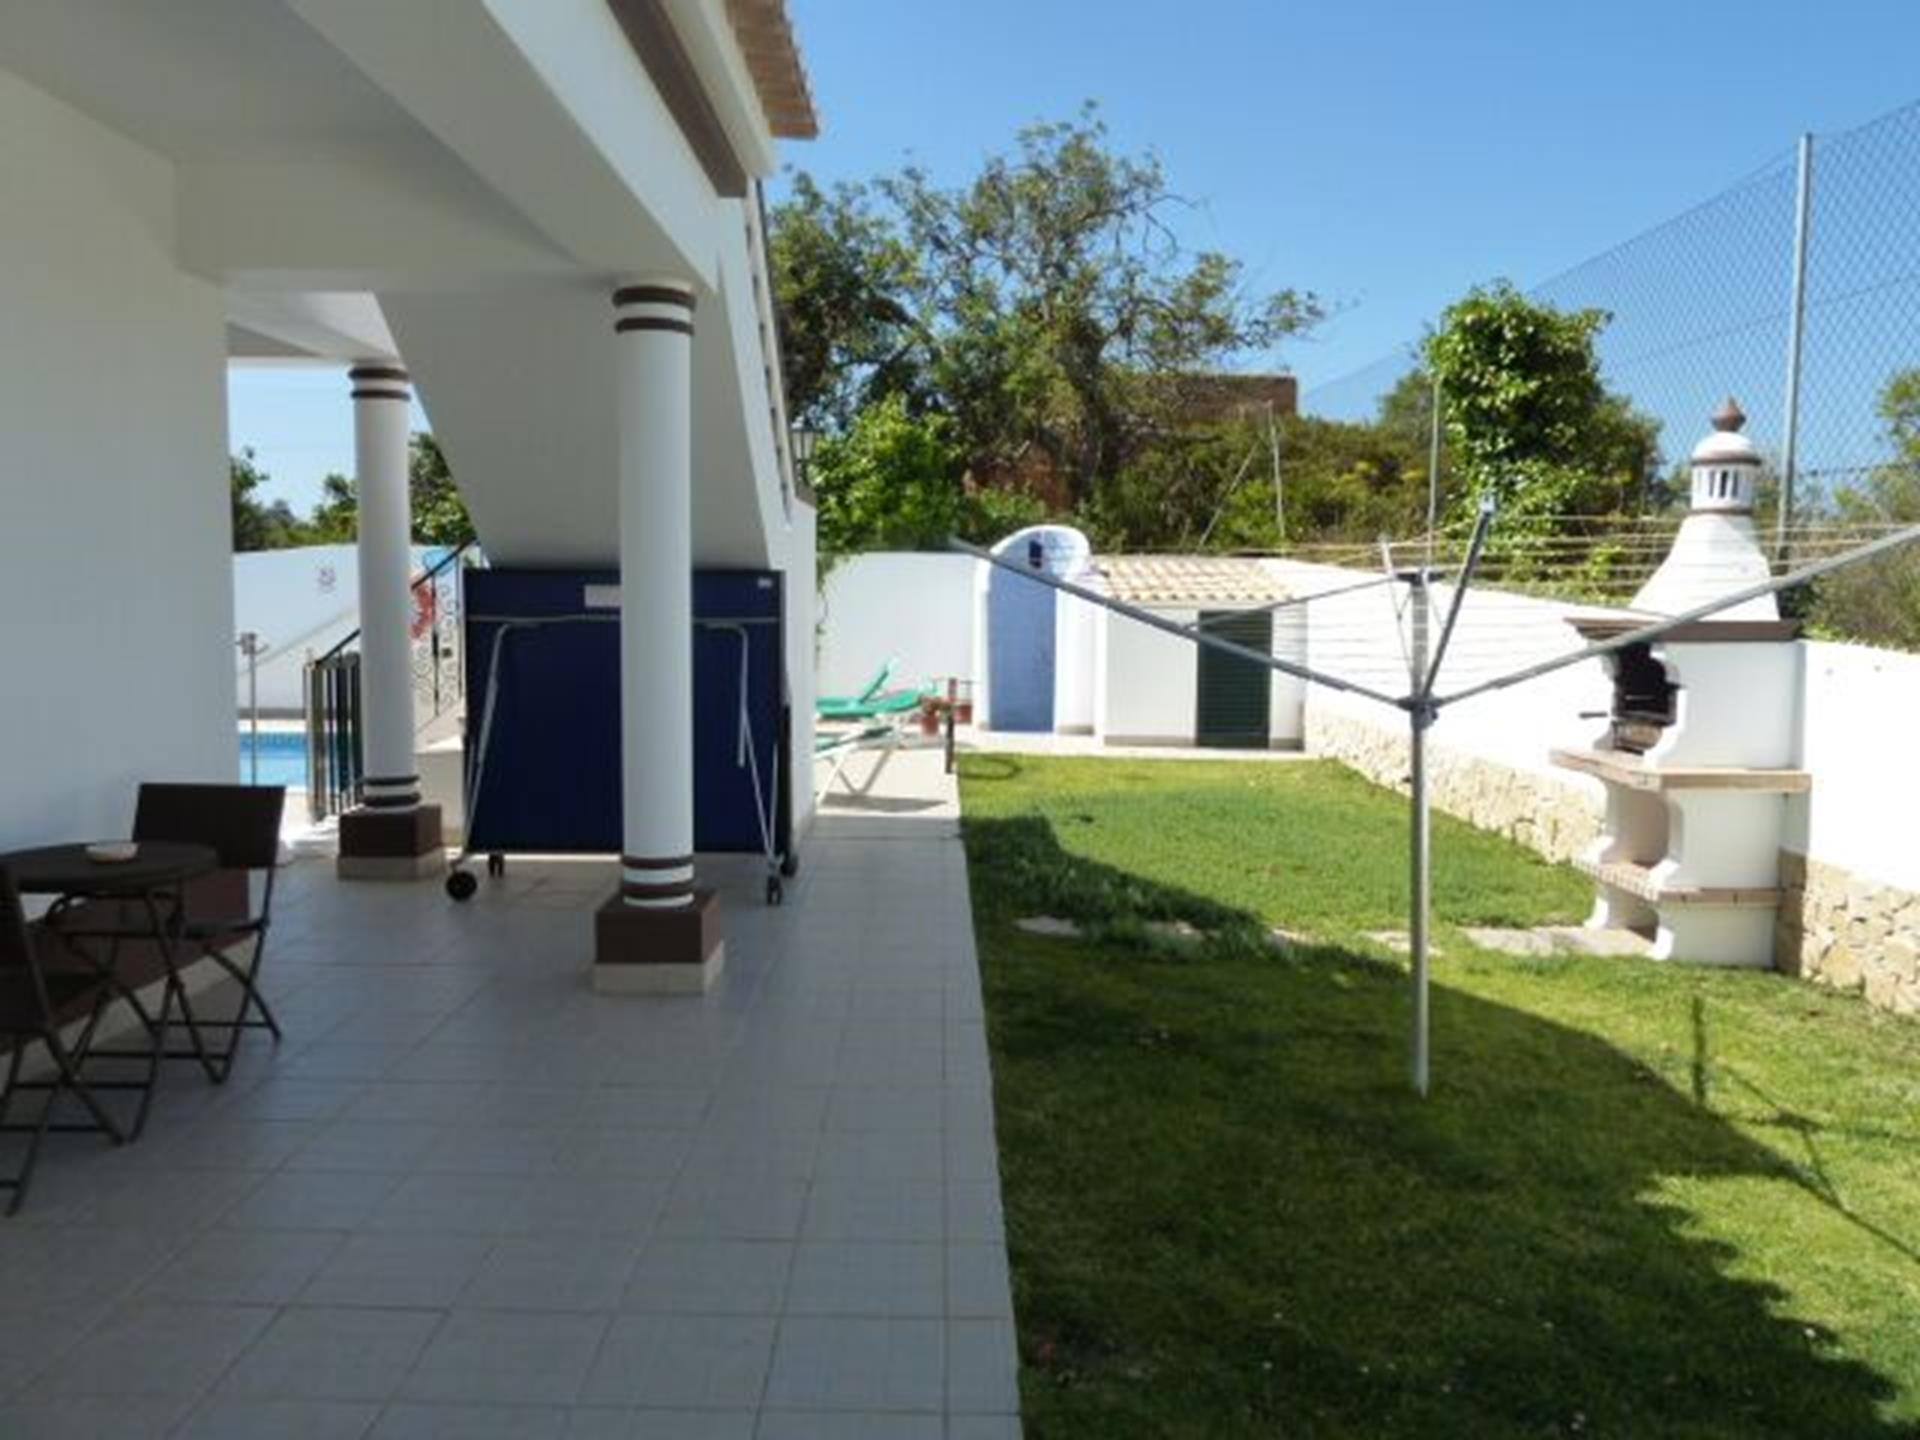 Outdoor BBQ, located by the pool, including outdoor shower & ping pong table.